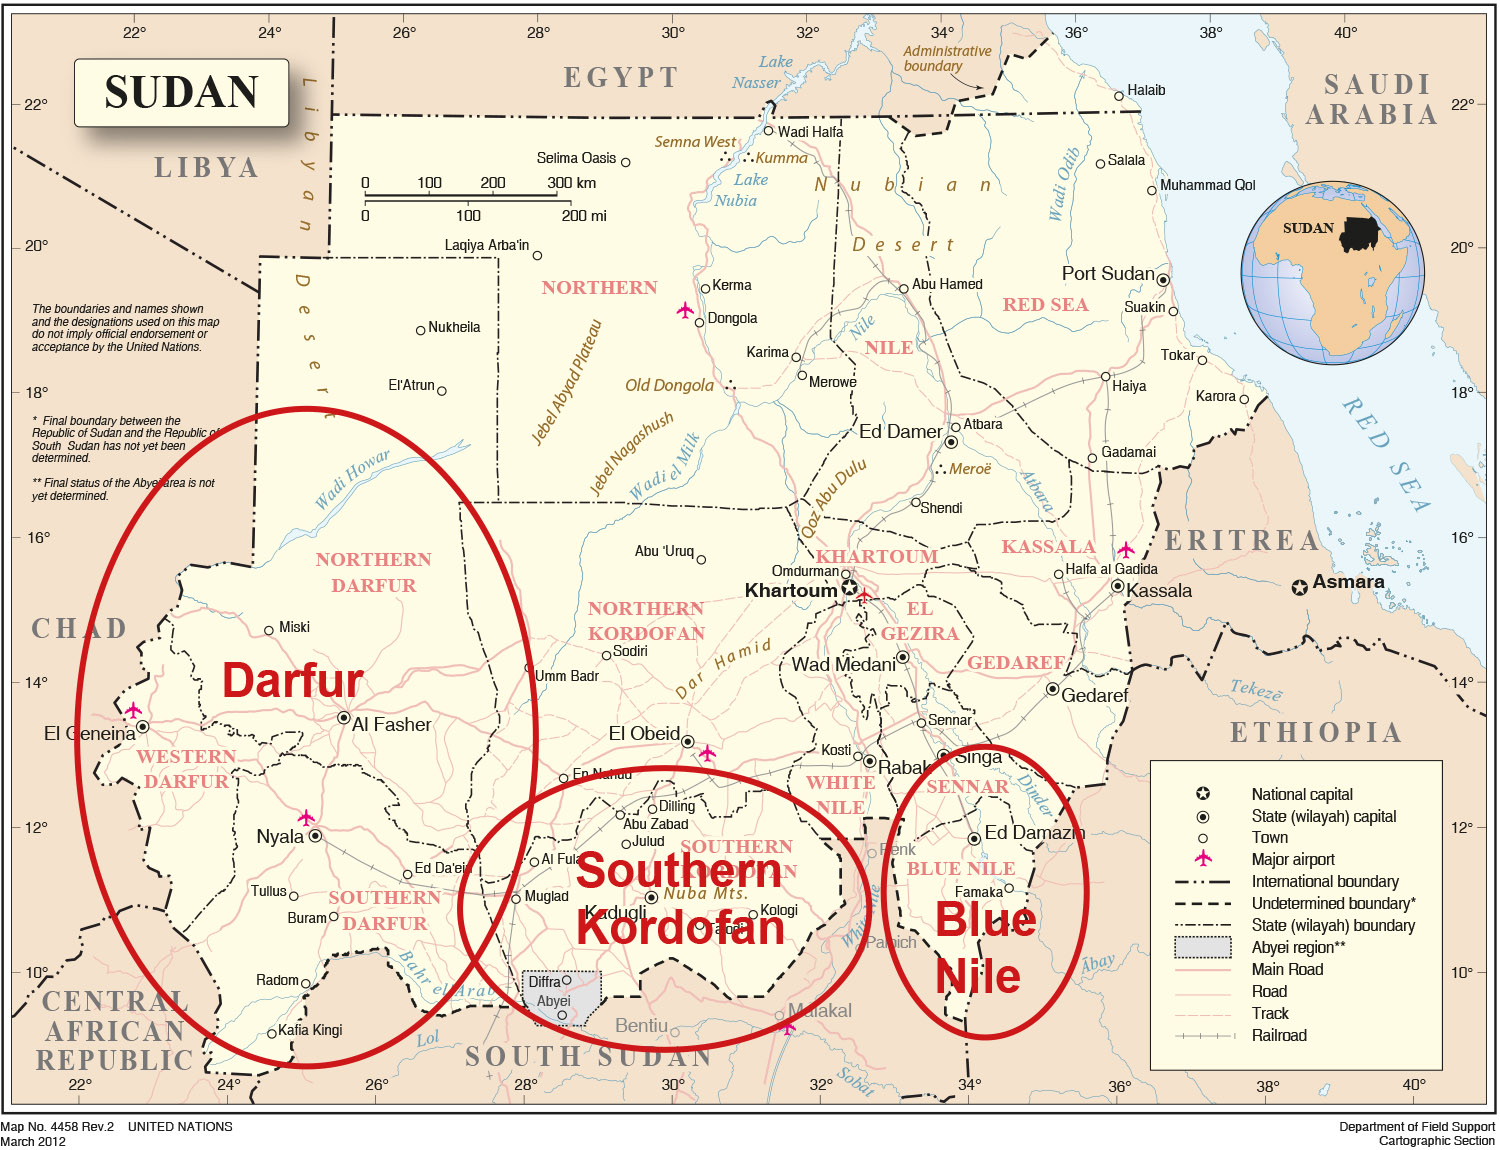 Areas of SDC activities in Sudan